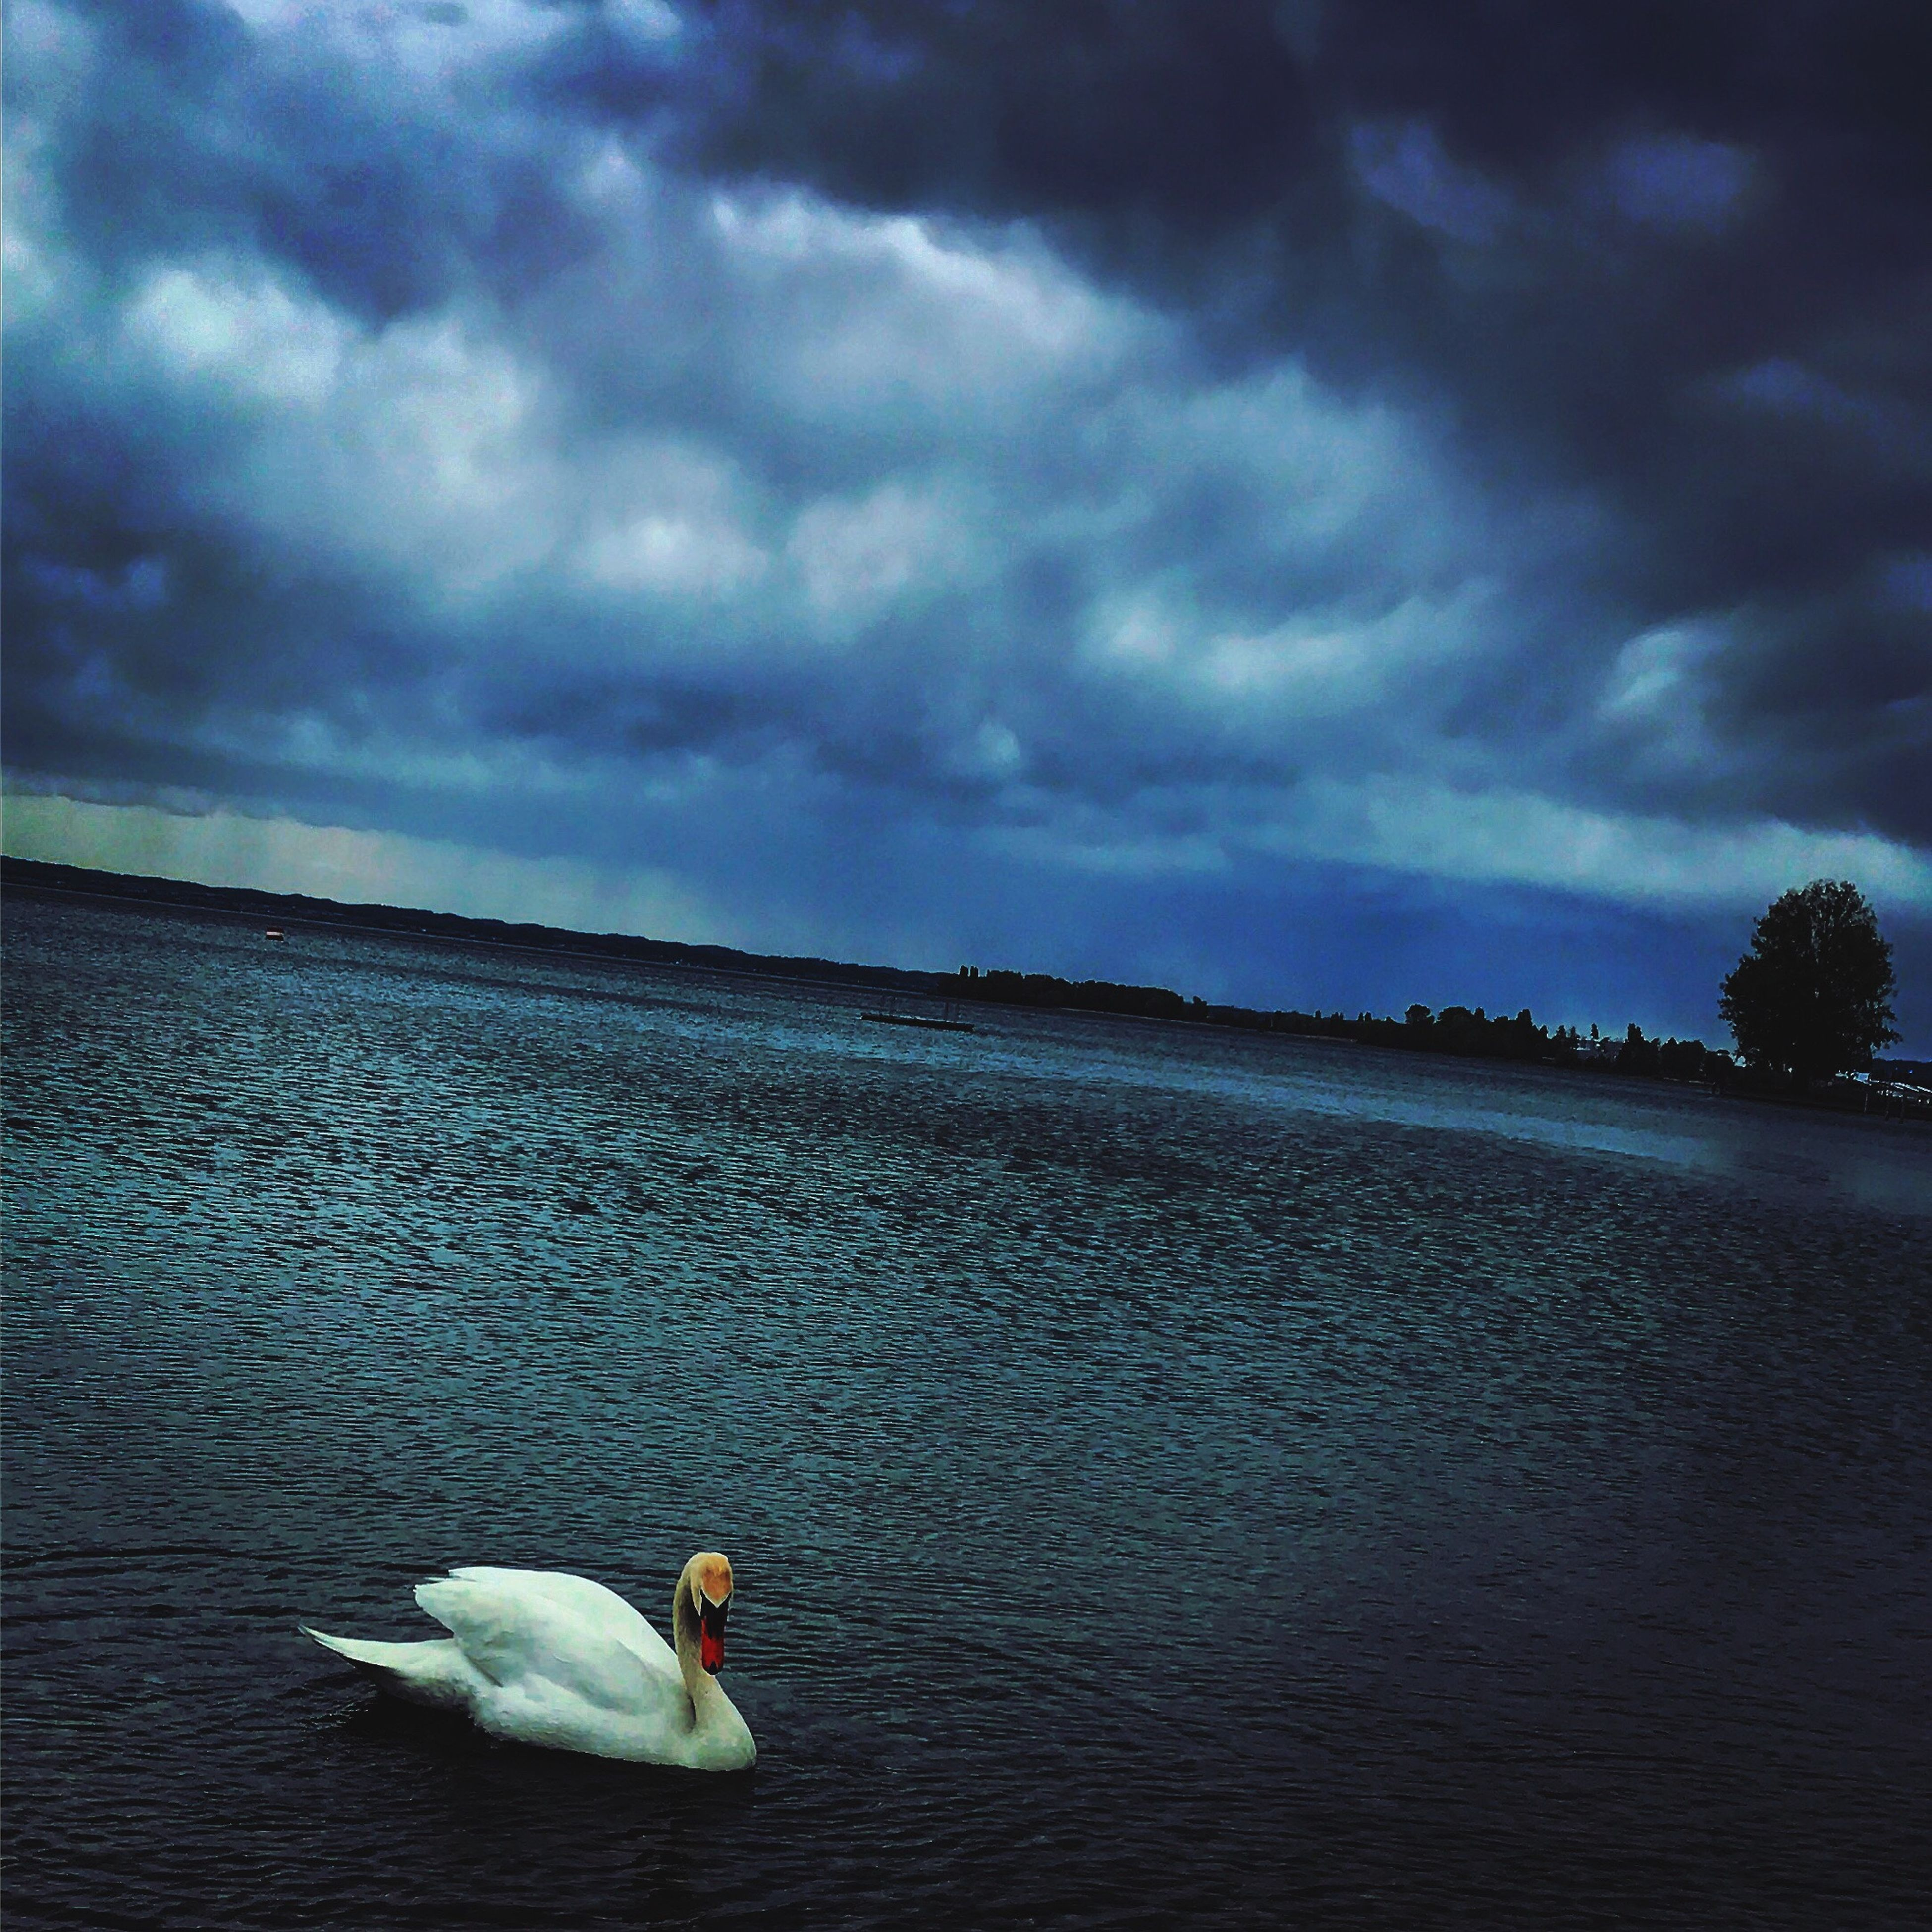 sky, cloud - sky, water, nature, one animal, animal themes, sea, outdoors, beauty in nature, swan, animals in the wild, no people, bird, day, scenics, swimming, horizon over water